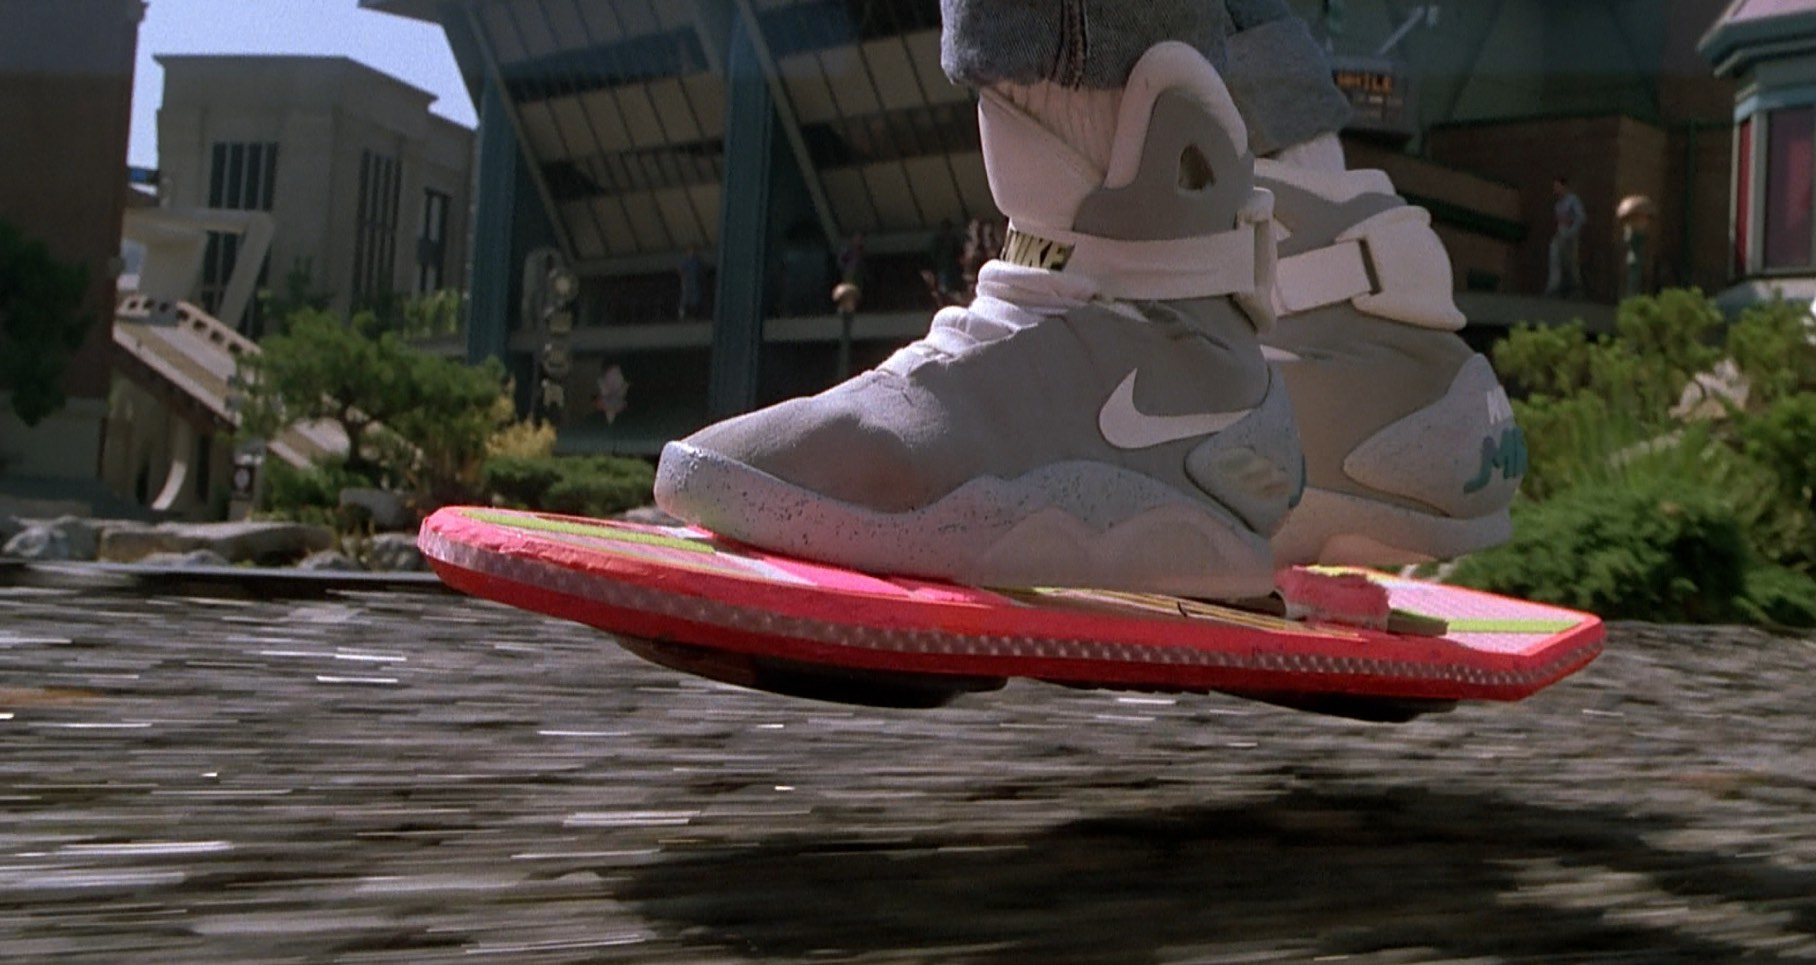 The future is hoverboards!